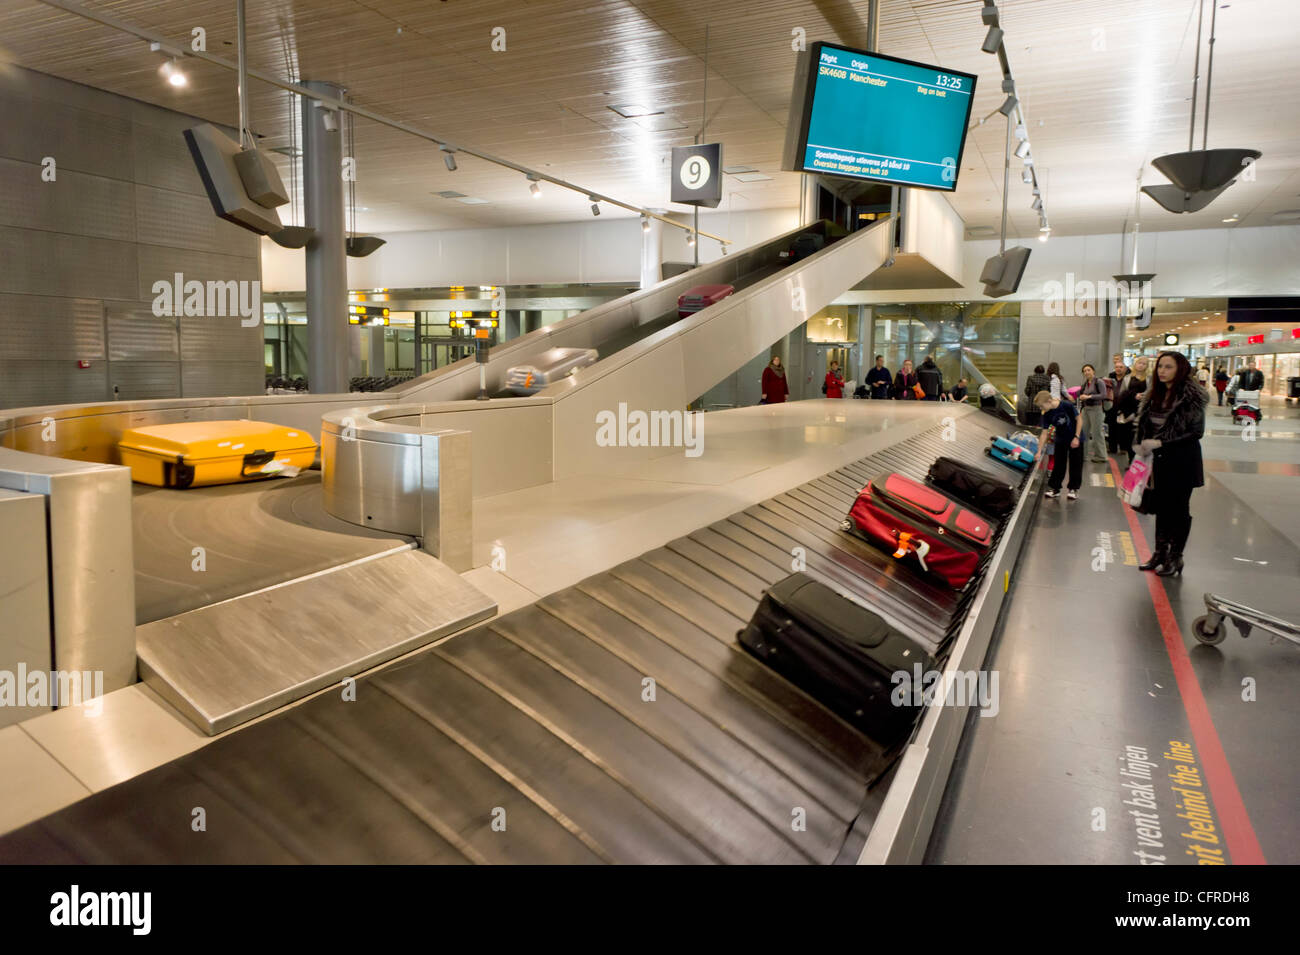 waiting for suitcases at the Luggage carousel in arrivals hall at Oslo Airport Norway Europe - Stock Image